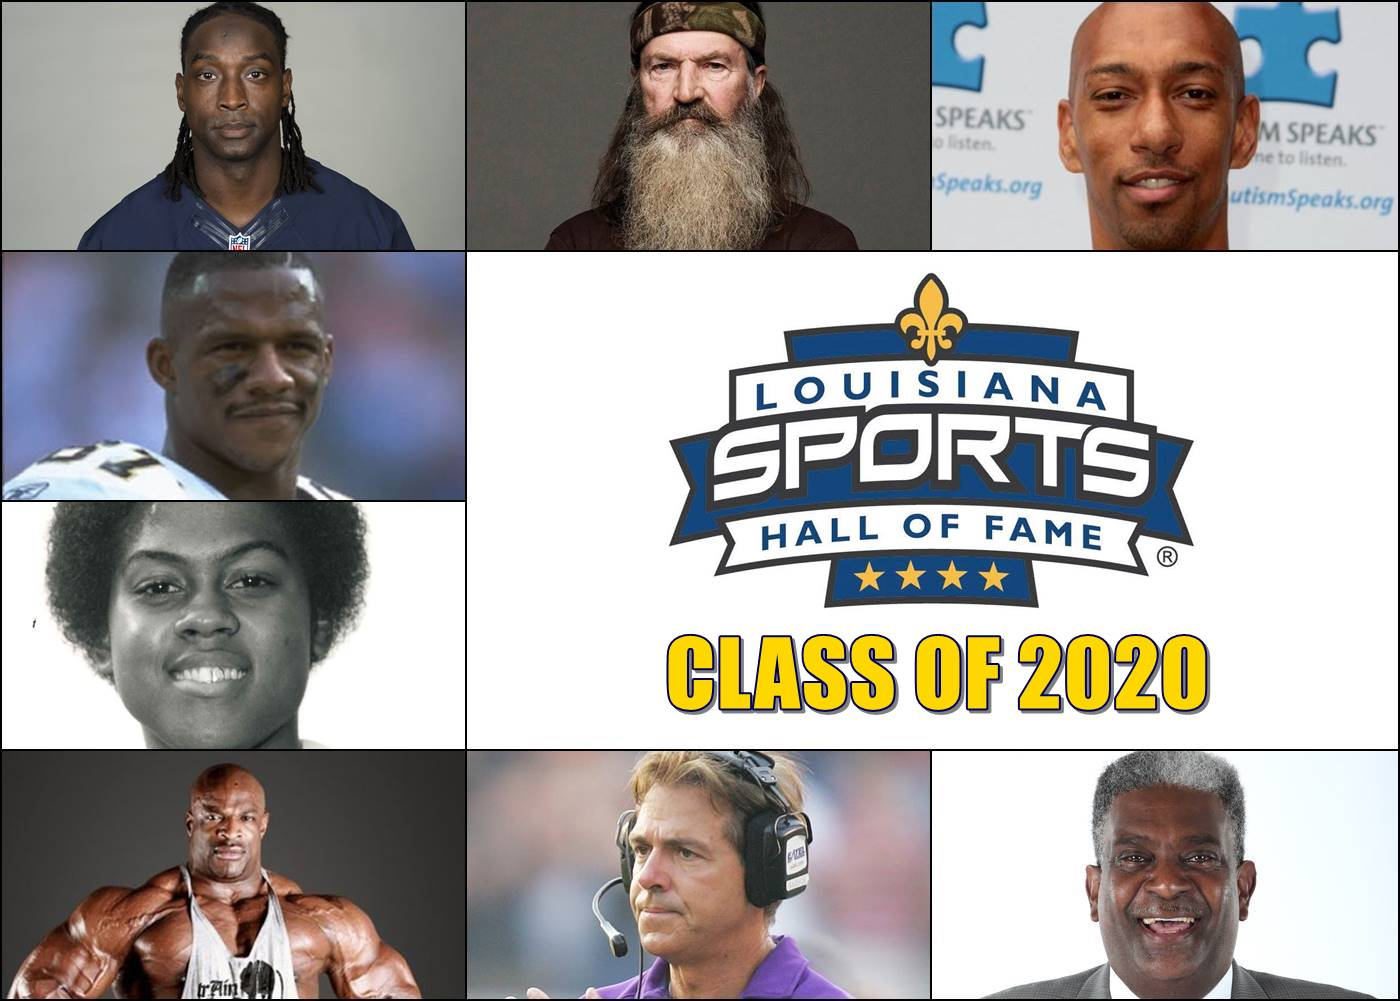 Louisiana Sports Hall of Fame announces 2020 induction class